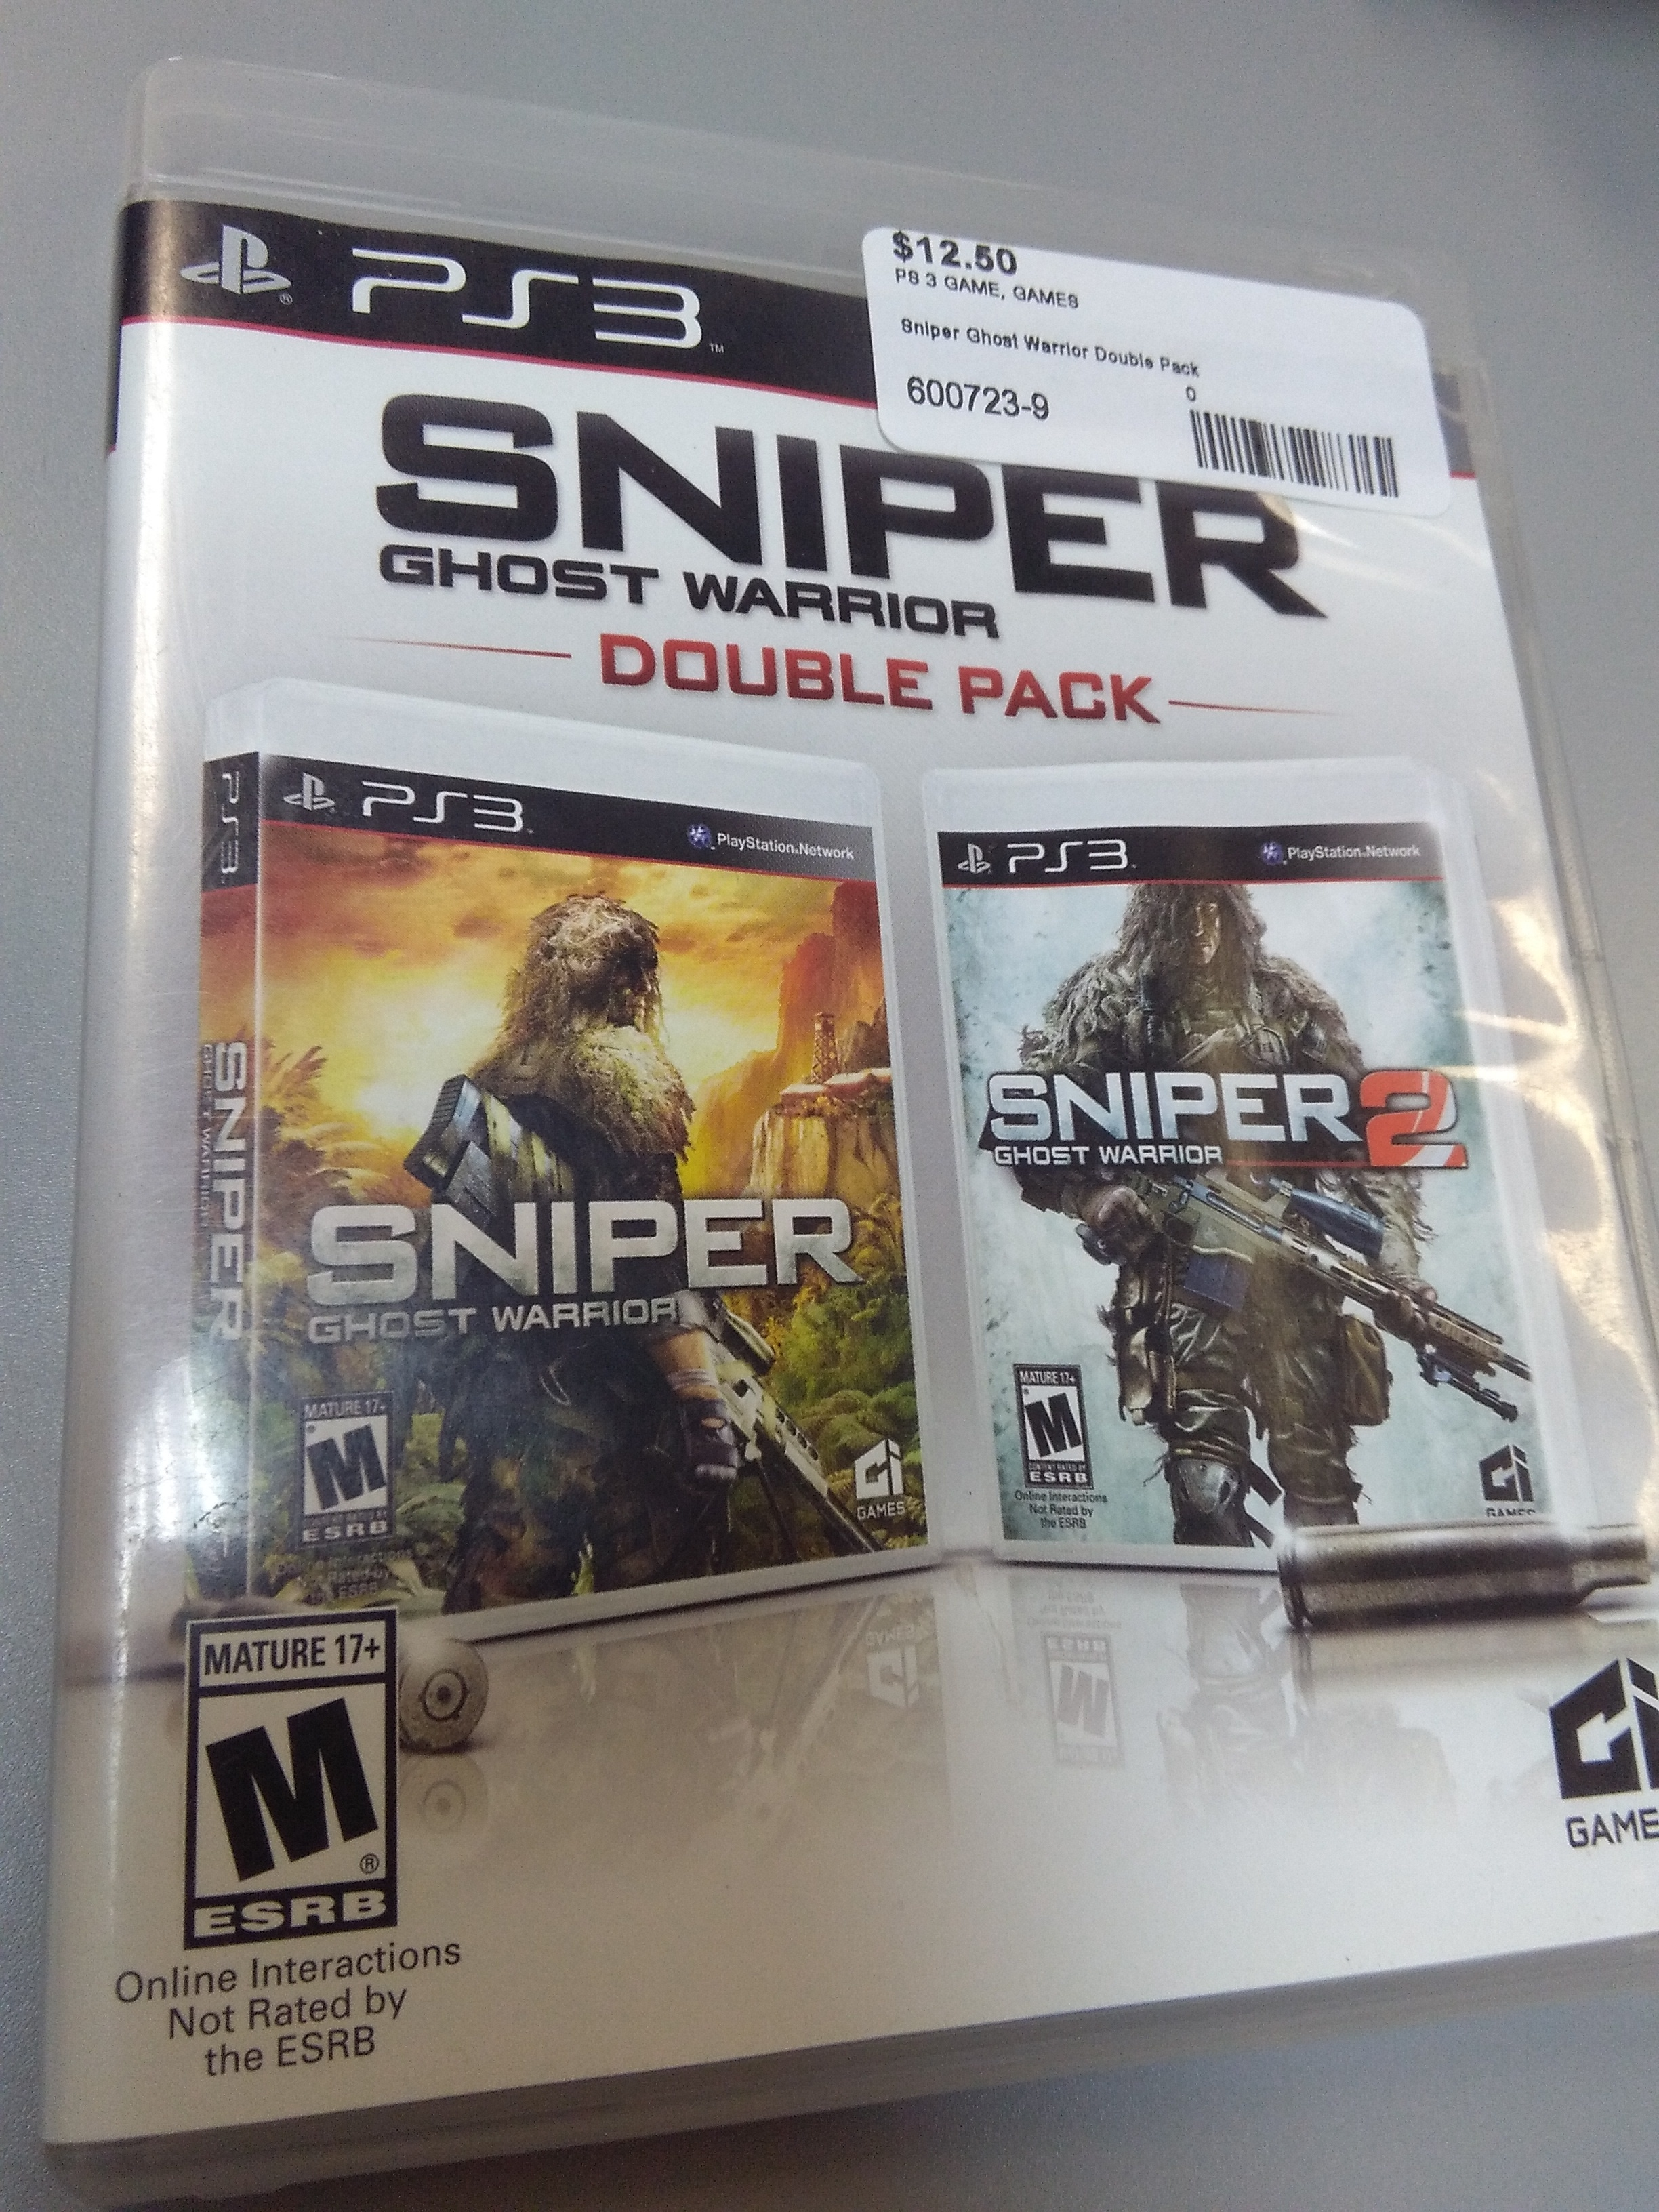 Sniper ghost warrior double pack for PS3